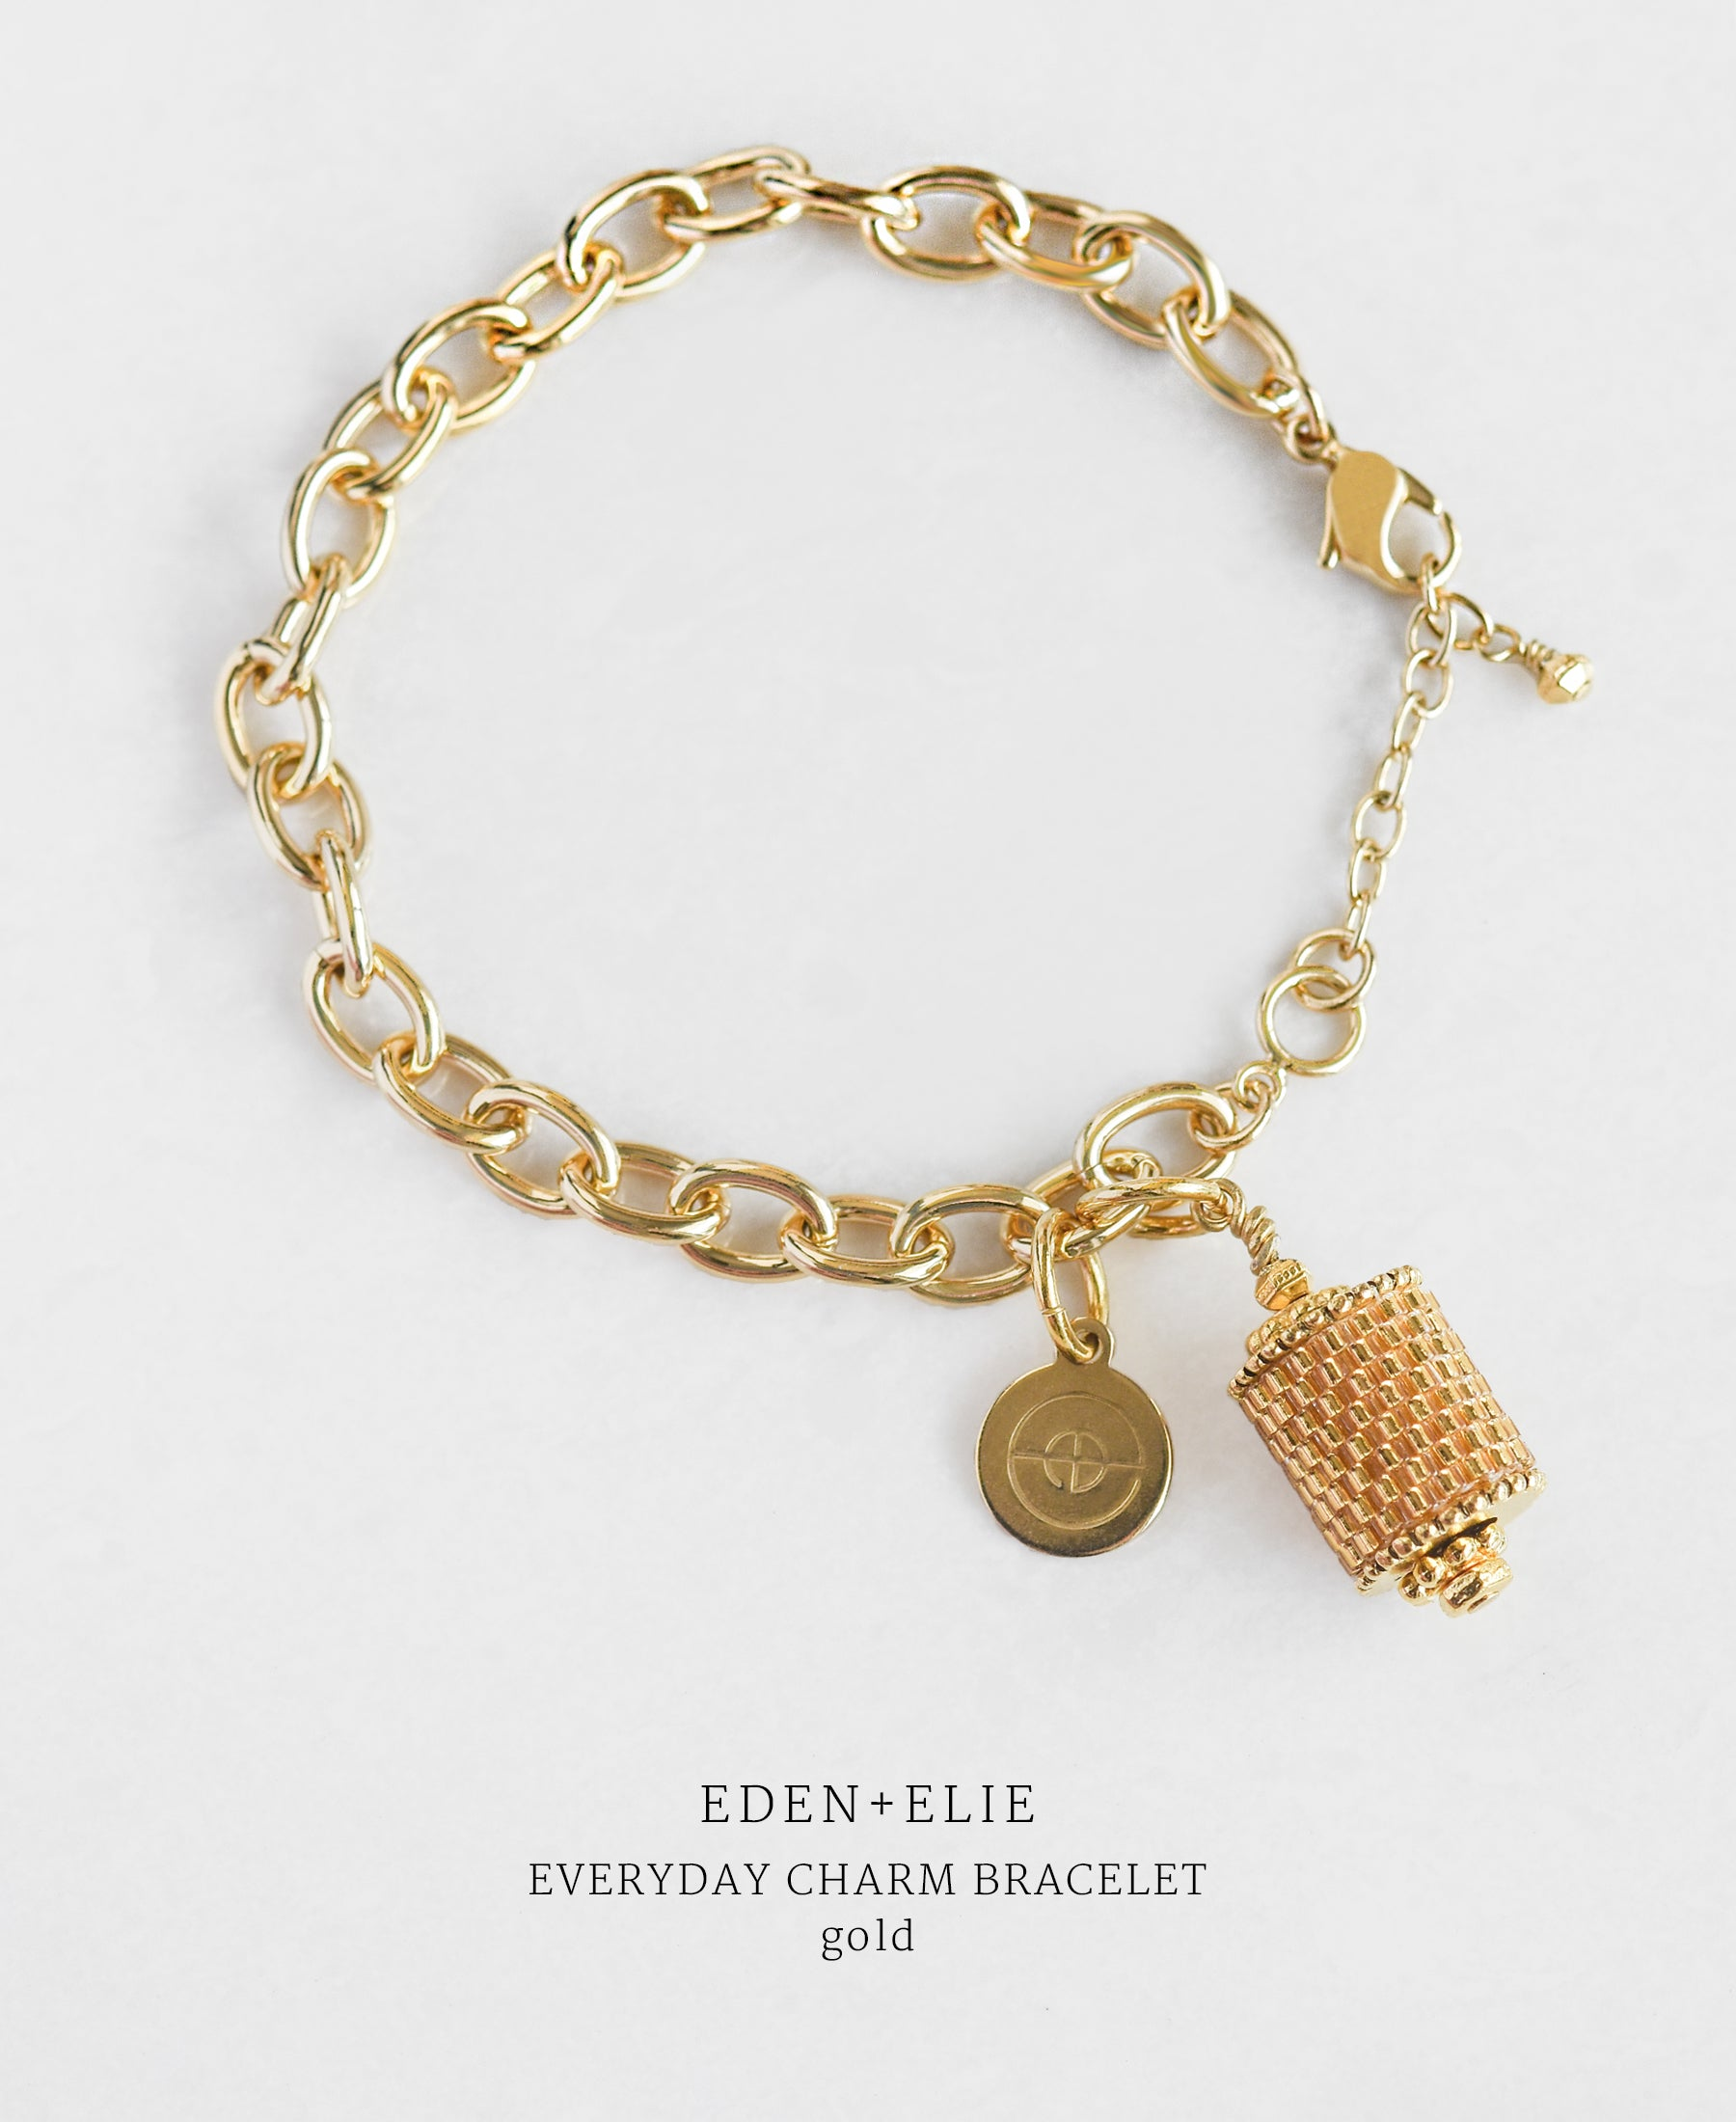 EDEN + ELIE Everyday gold charm bracelet - gold